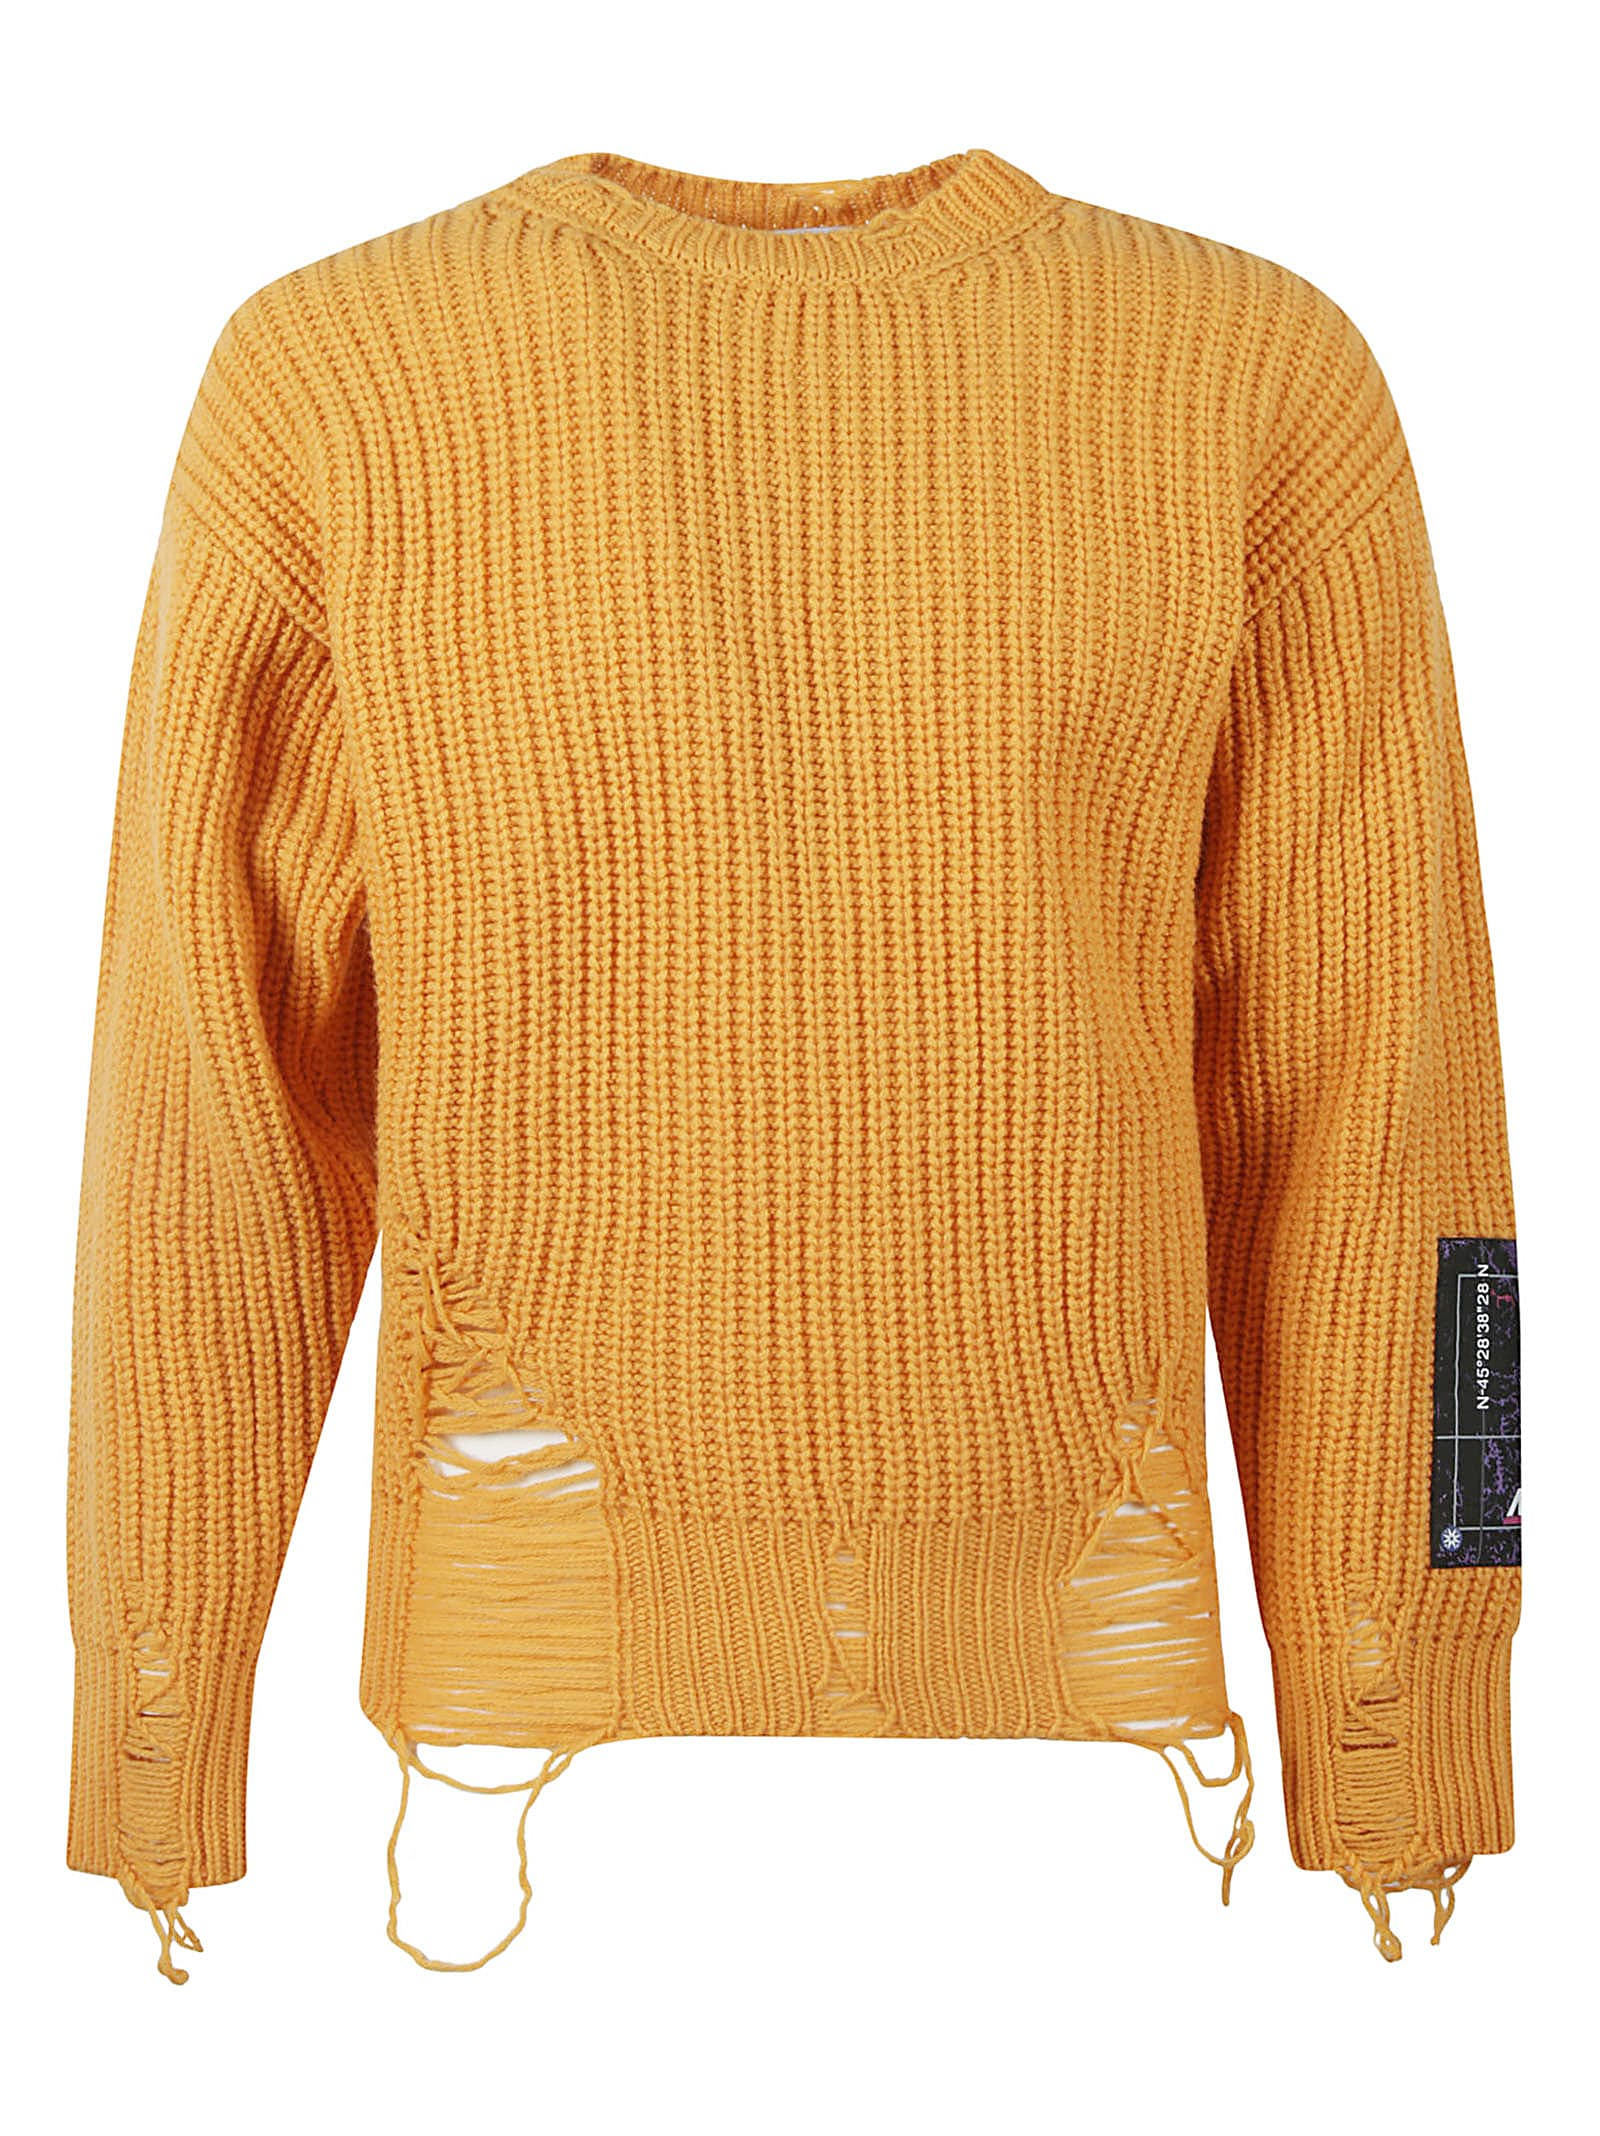 Msgm Logo Patch Distressed Effect Rib Knit Pullover In Orange